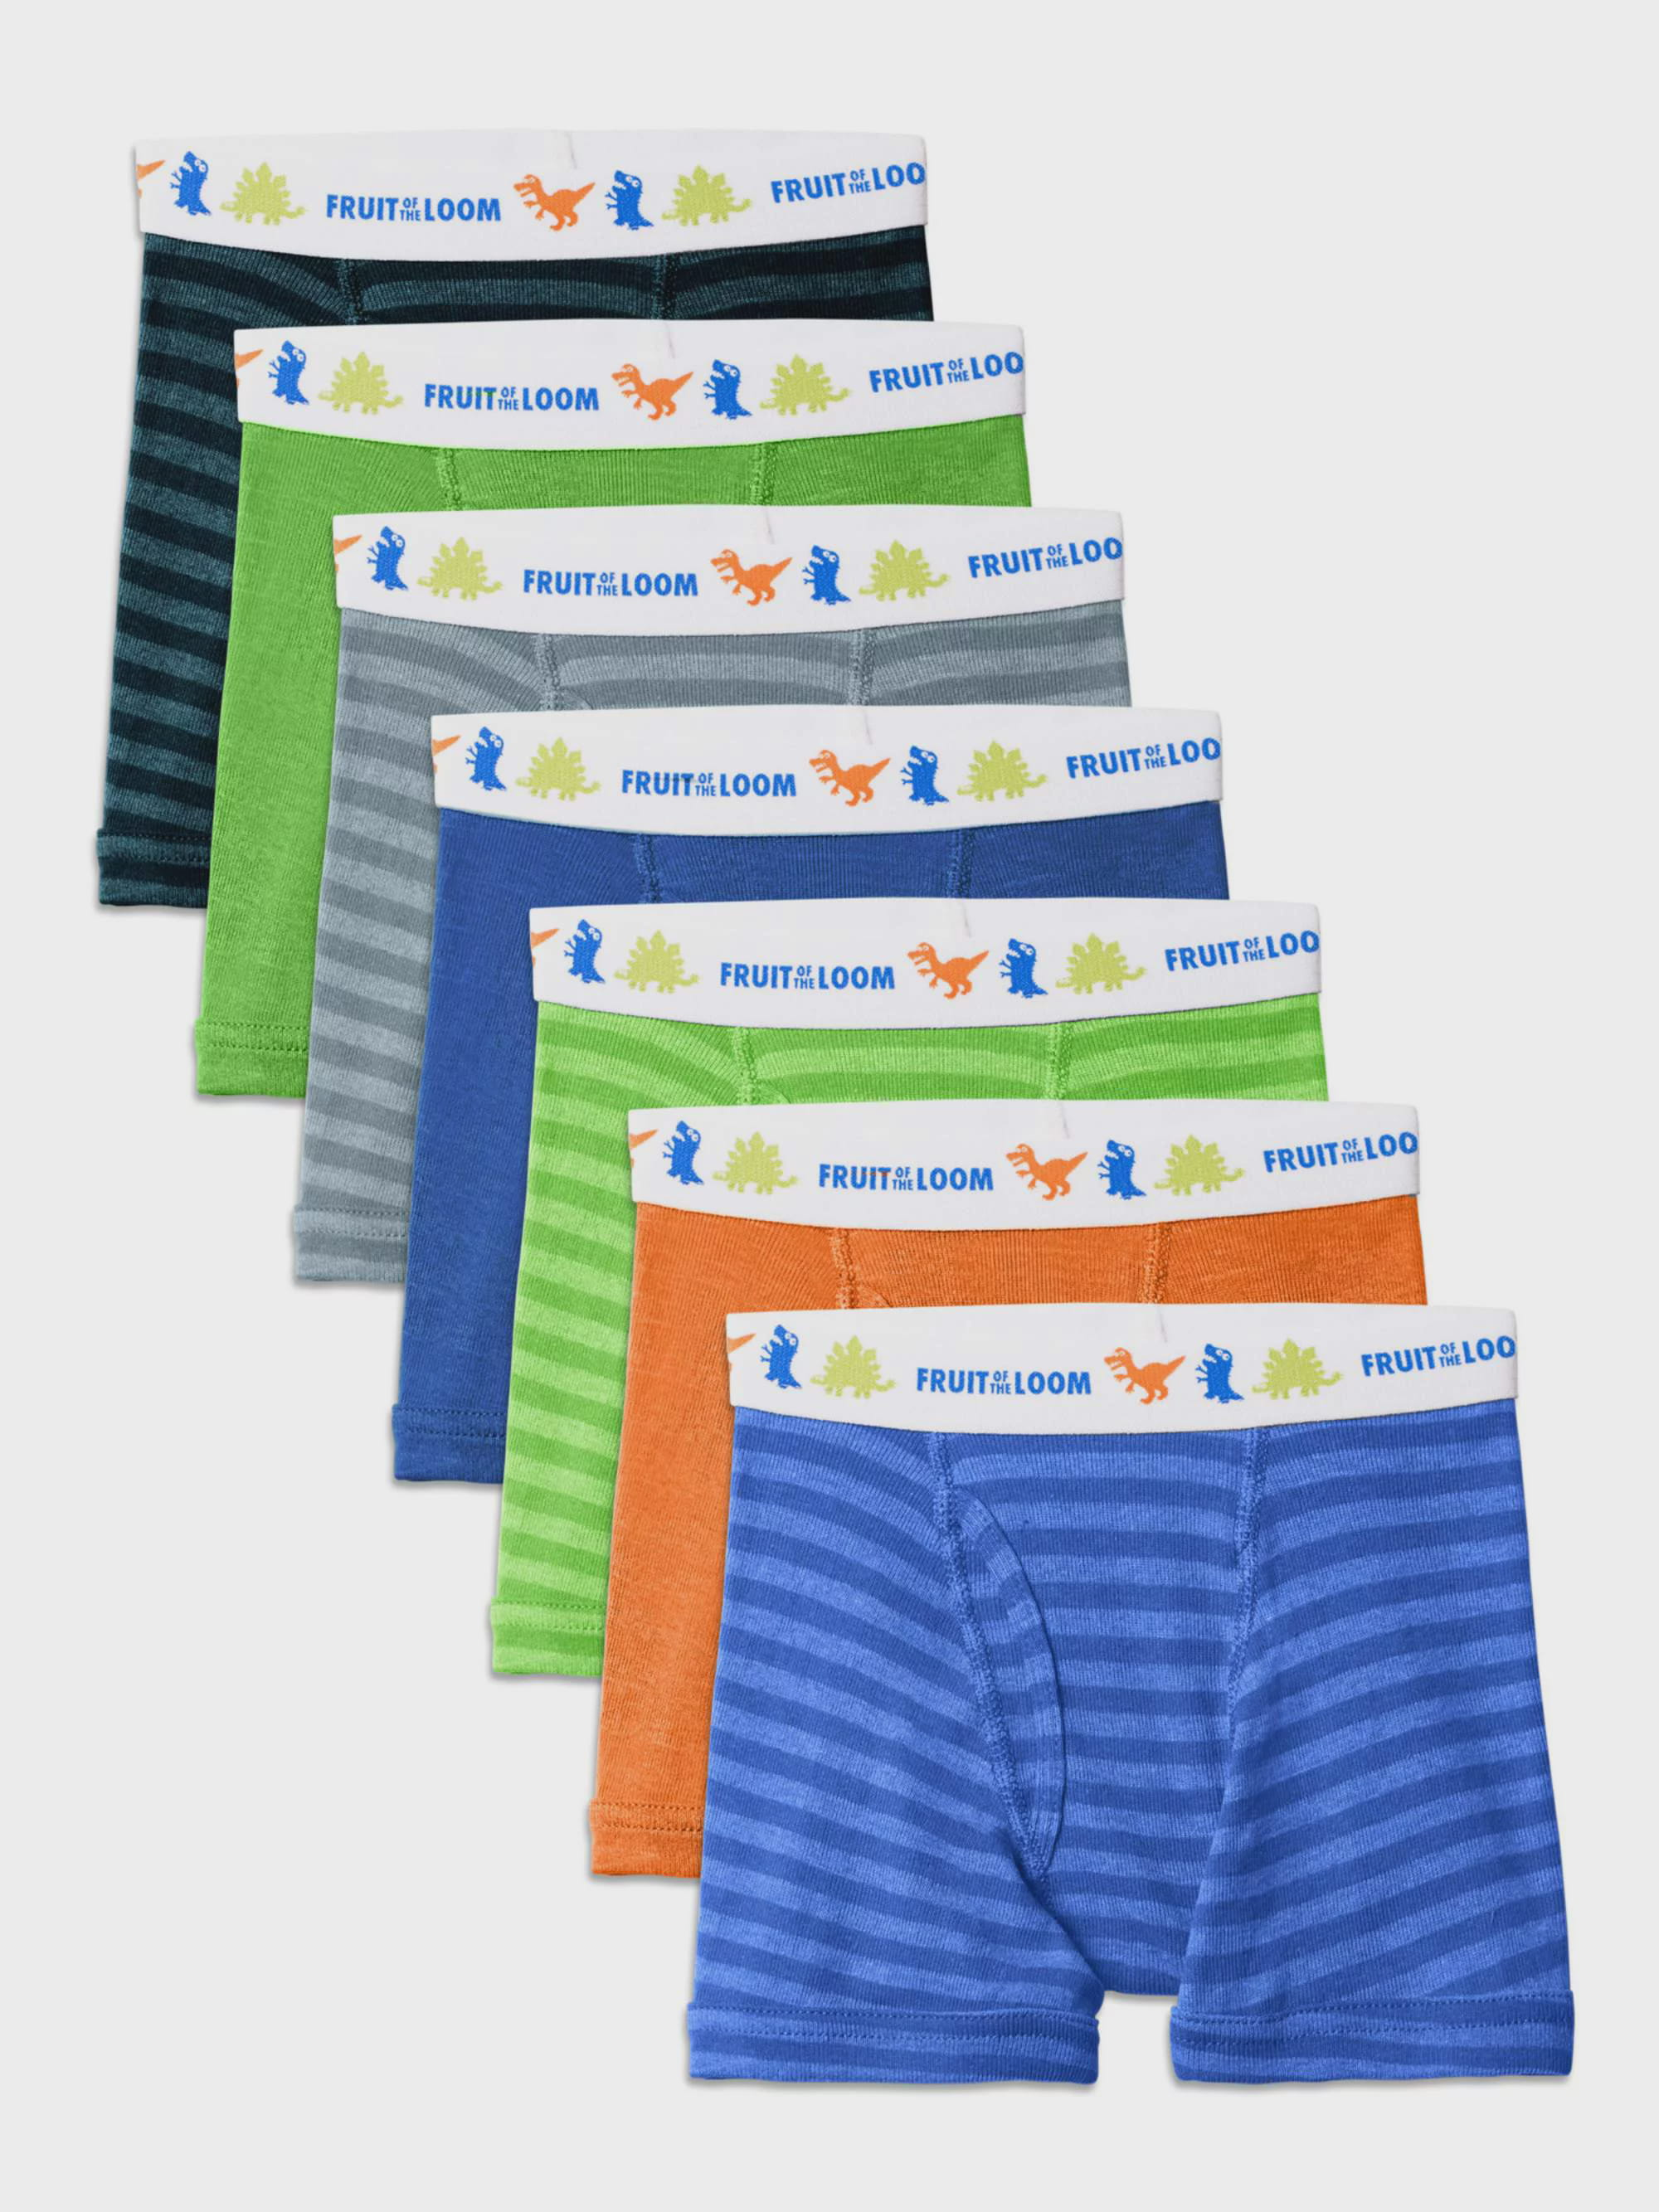 9718fd9a38ed Fruit of the Loom - Assorted Cotton Boxer Briefs, 7 Pack (Toddler Boy) -  Walmart.com